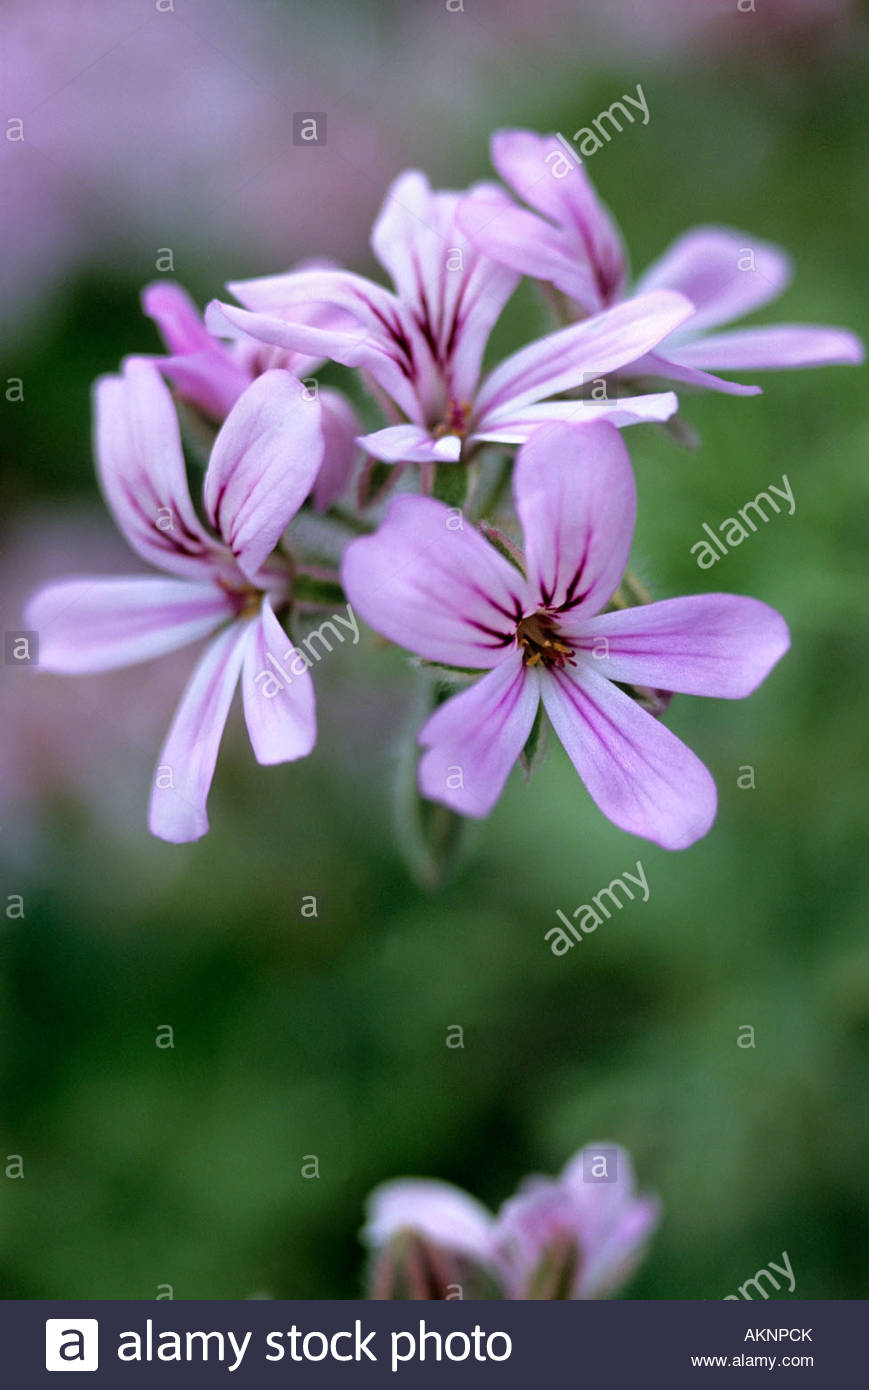 Pelargonium grey lady plymouth scented geranium mauve to pink flower pelargonium grey lady plymouth scented geranium mauve to pink flower with grey silver green foliage herb nursery rutland mightylinksfo Image collections